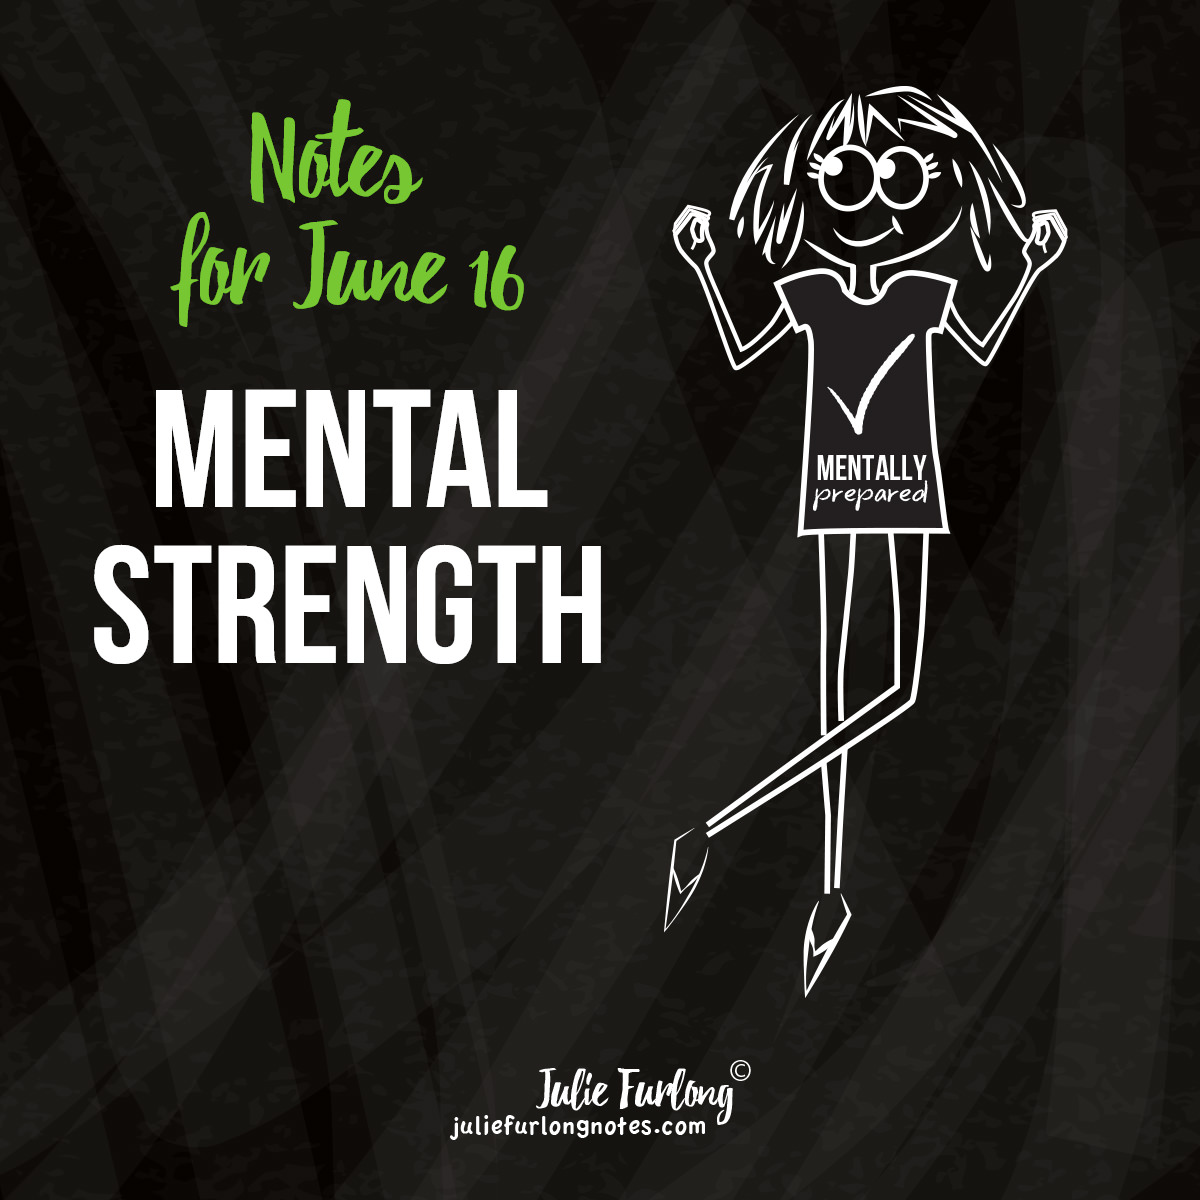 Julie-Furlong-Notes-mental-strength